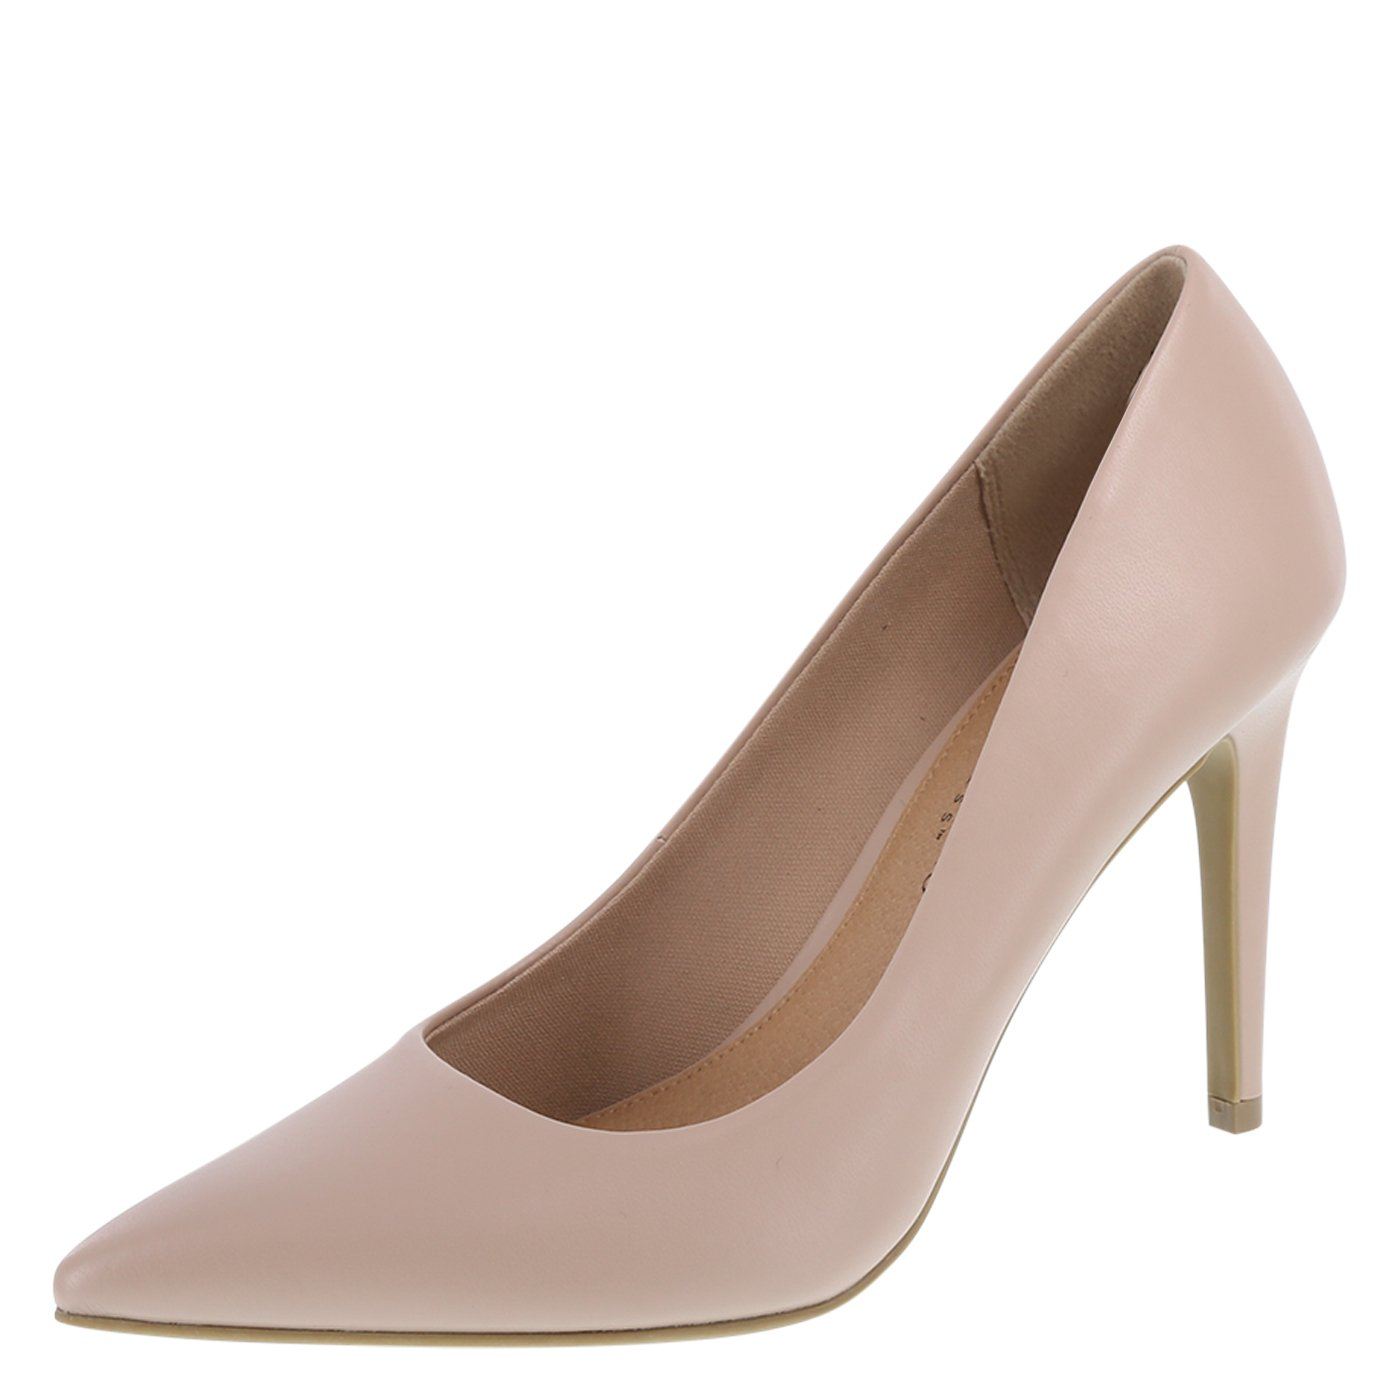 Christian Siriano for Payless Nude Women's Habit Pointed Pump 8.5 Regular